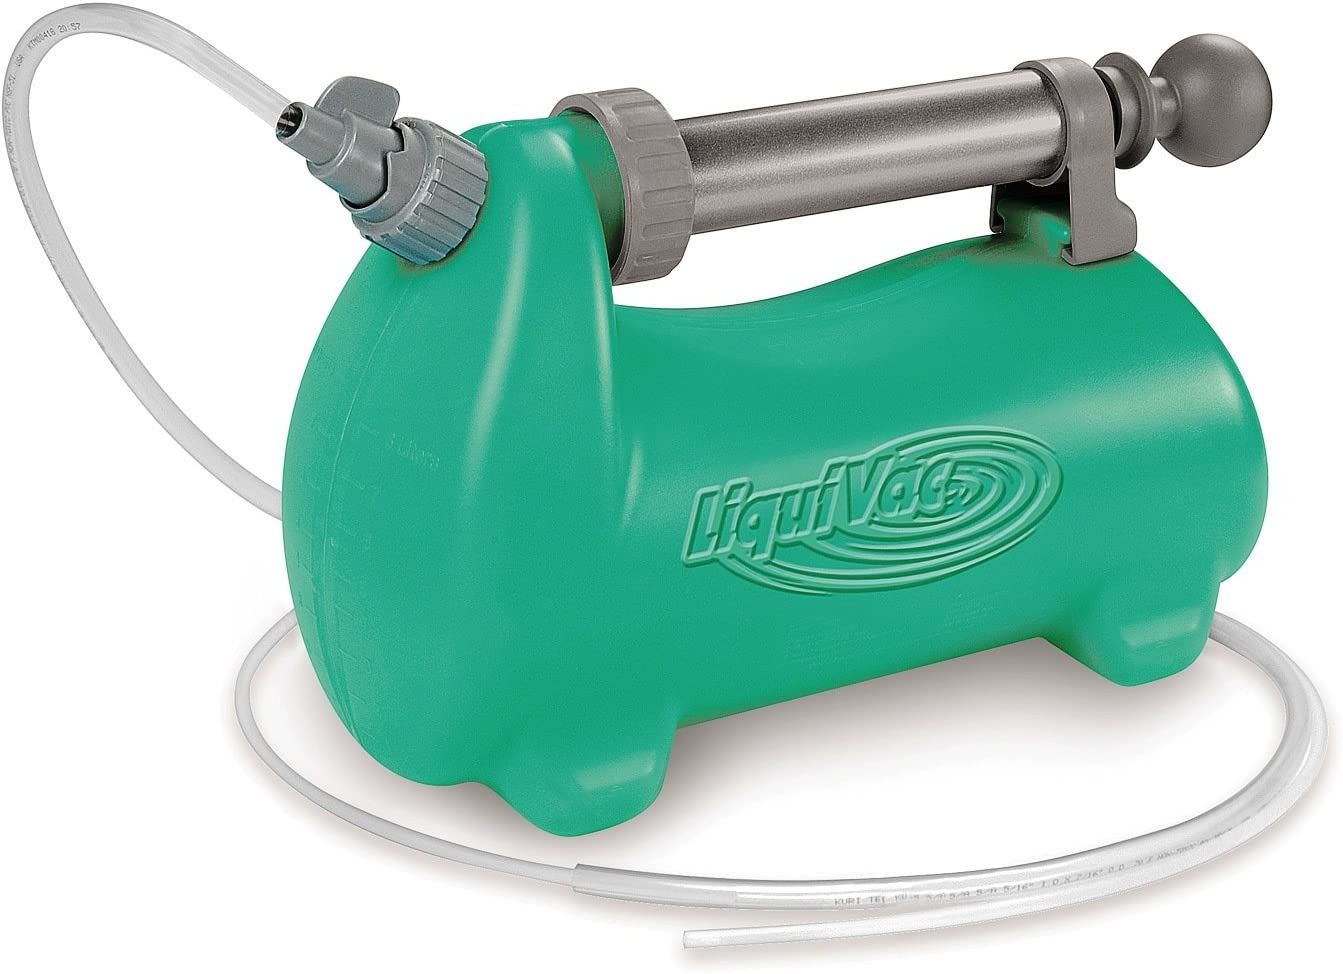 Air Power America 2000 LiquiVac Green Large Oil Extractor